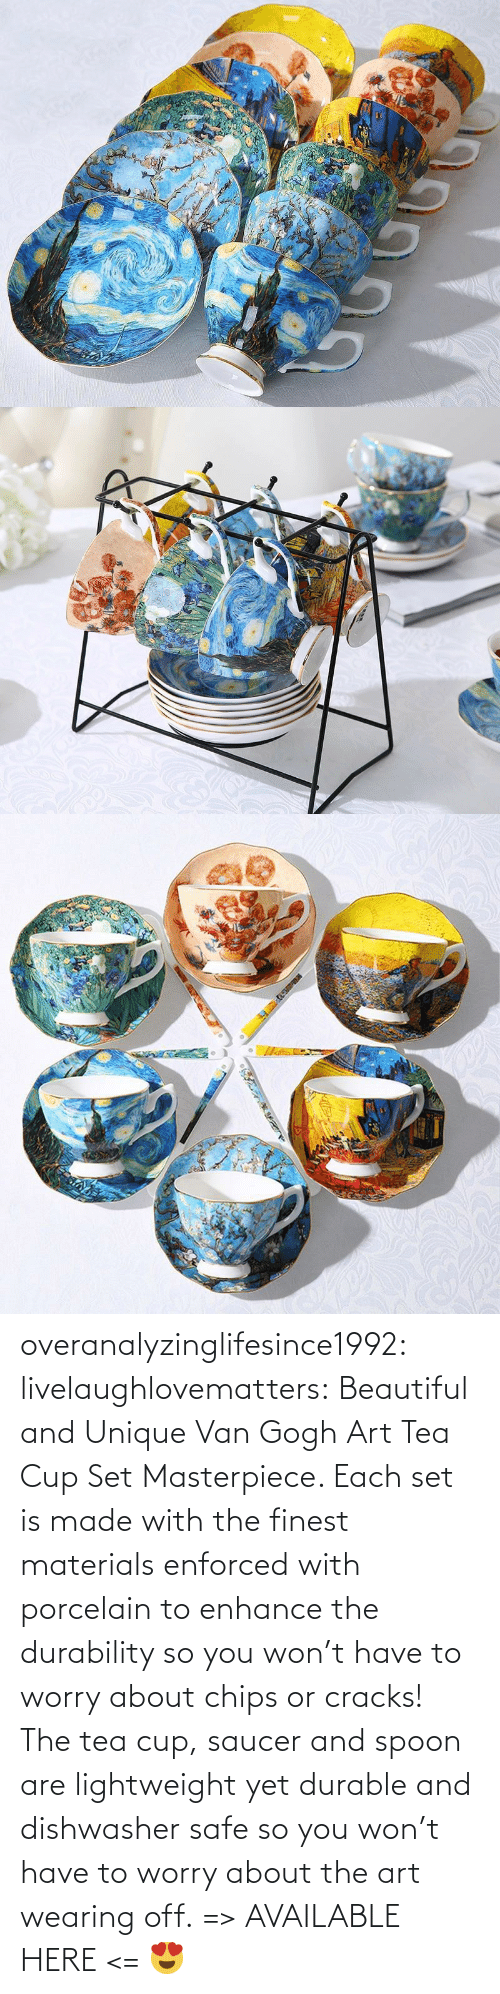 With: overanalyzinglifesince1992: livelaughlovematters:  Beautiful and Unique Van Gogh Art Tea Cup Set Masterpiece. Each set is made with the finest materials enforced with porcelain to enhance the durability so you won't have to worry about chips or cracks! The tea cup, saucer and spoon are lightweight yet durable and dishwasher safe so you won't have to worry about the art wearing off. => AVAILABLE HERE <=    😍